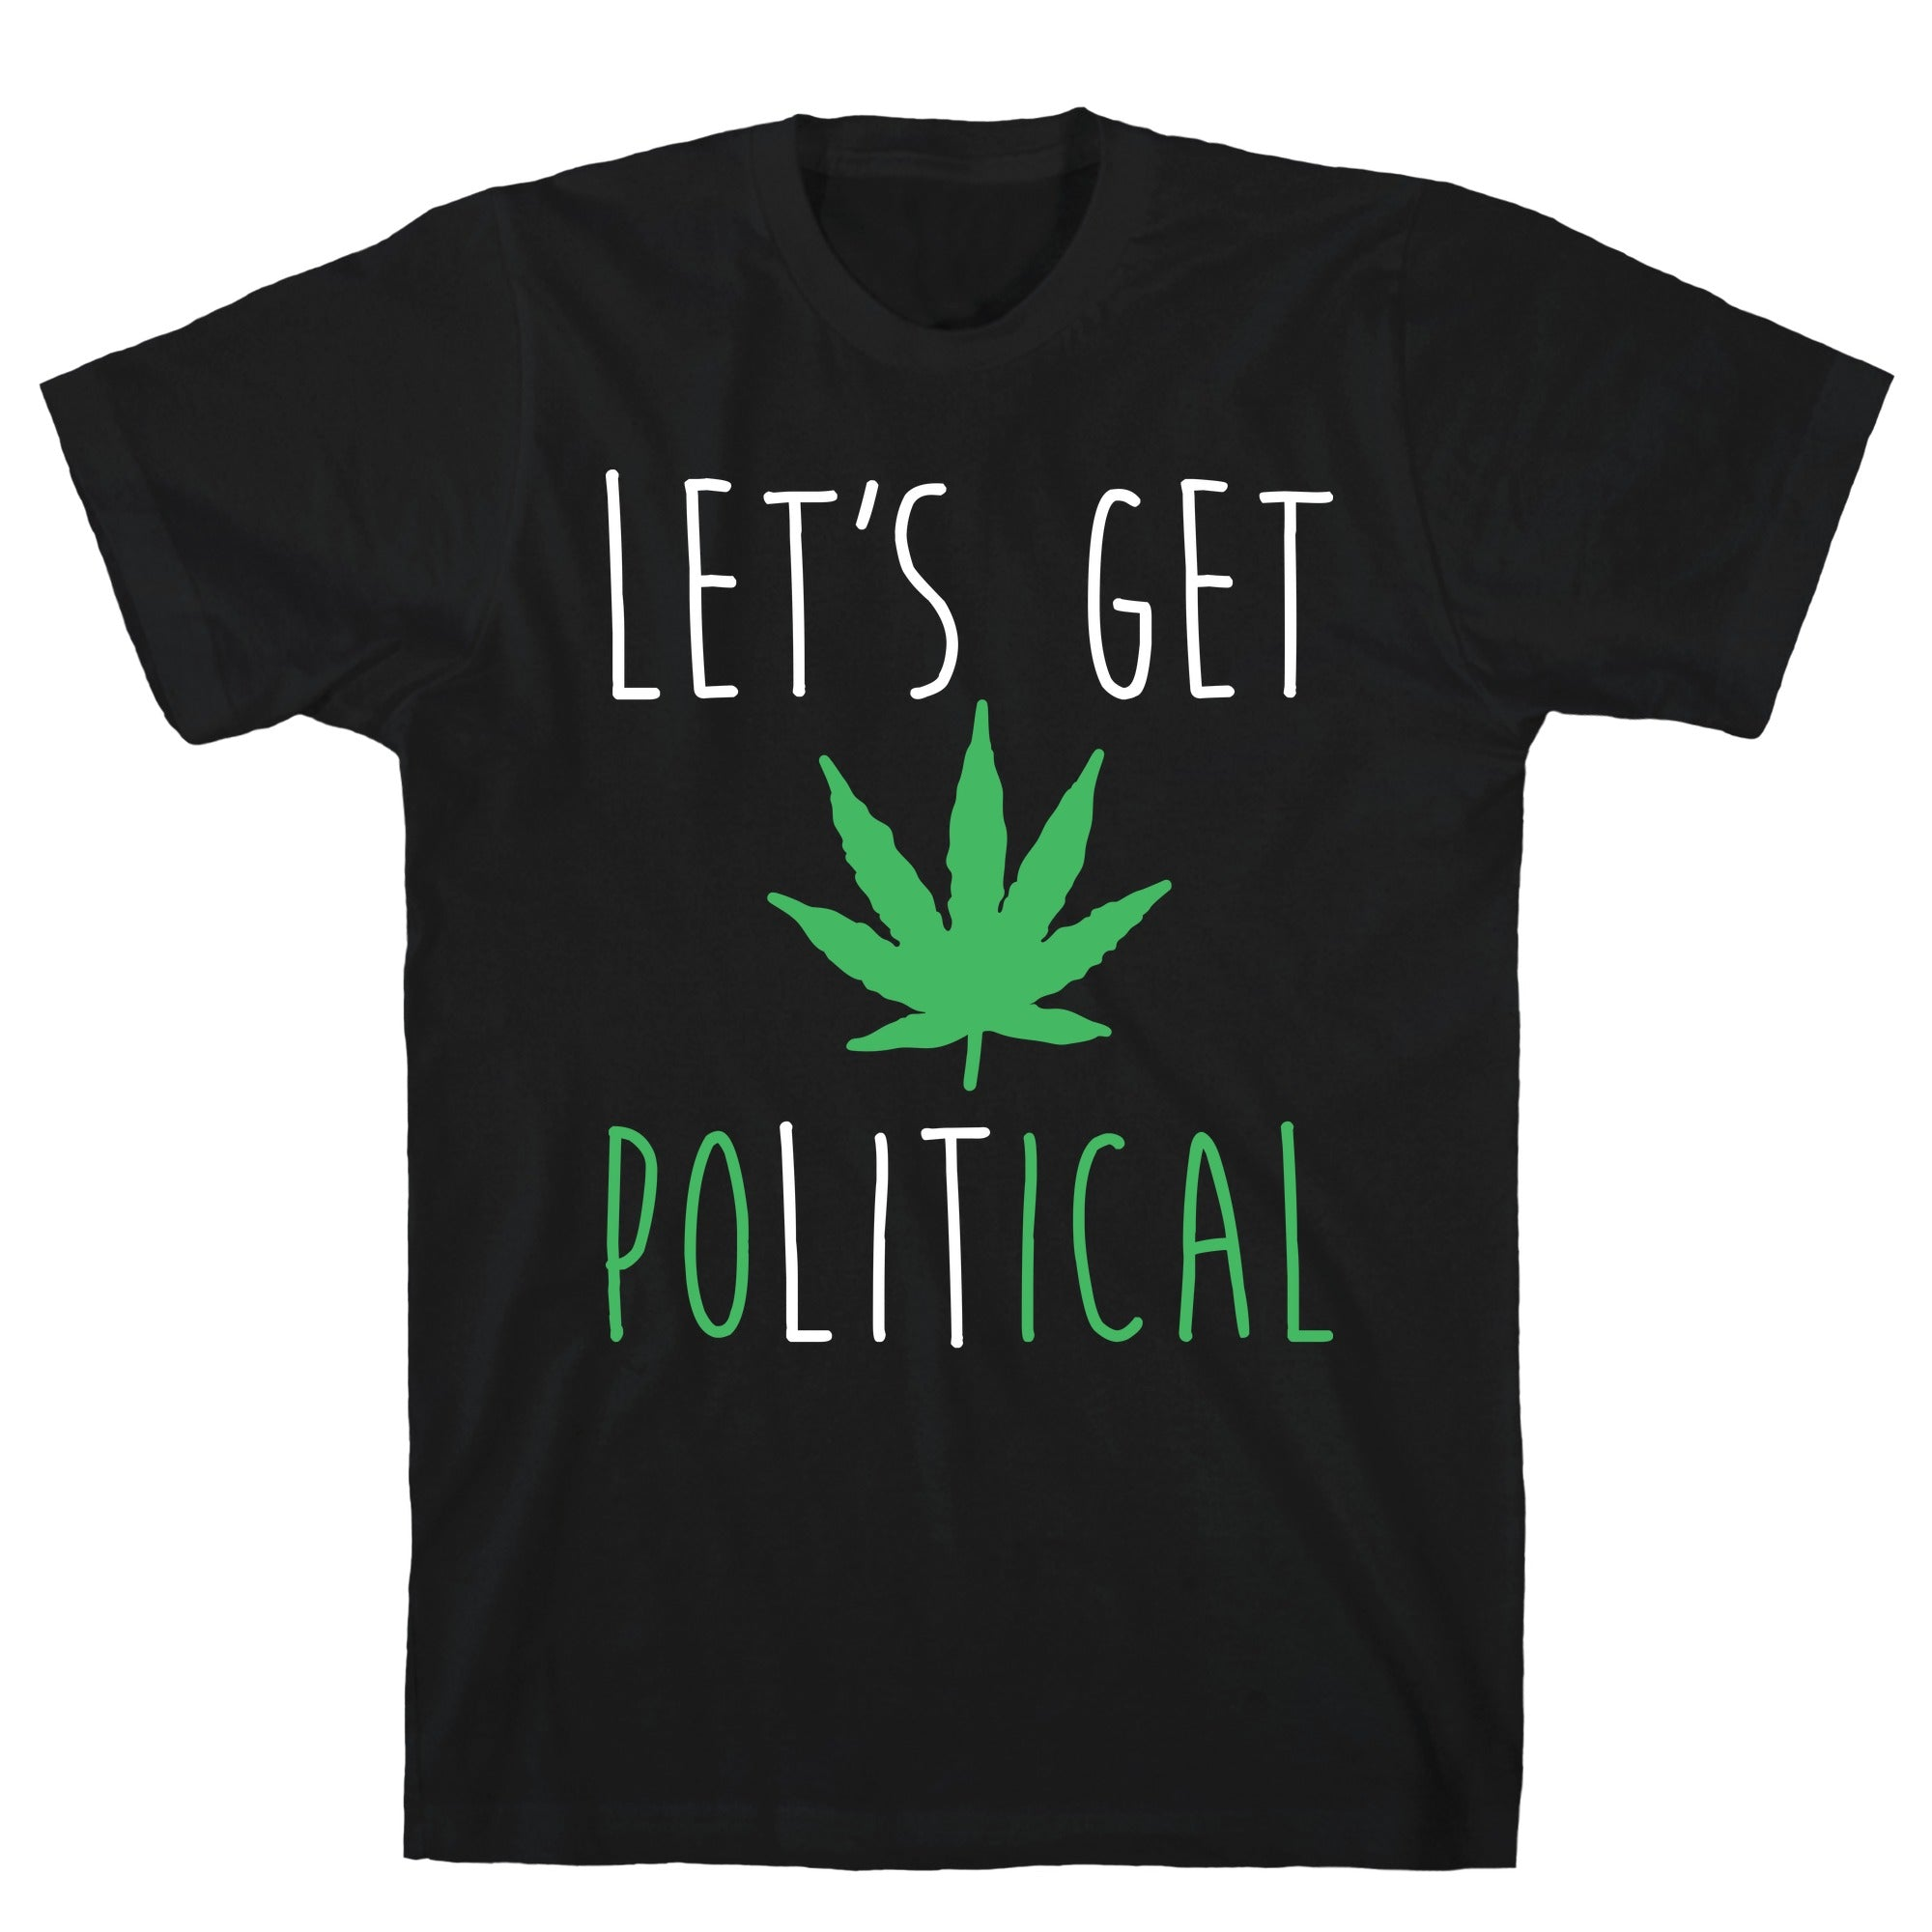 Let's Get PoLITical Weed Black Unisex Cotton Tee by LookHUMAN